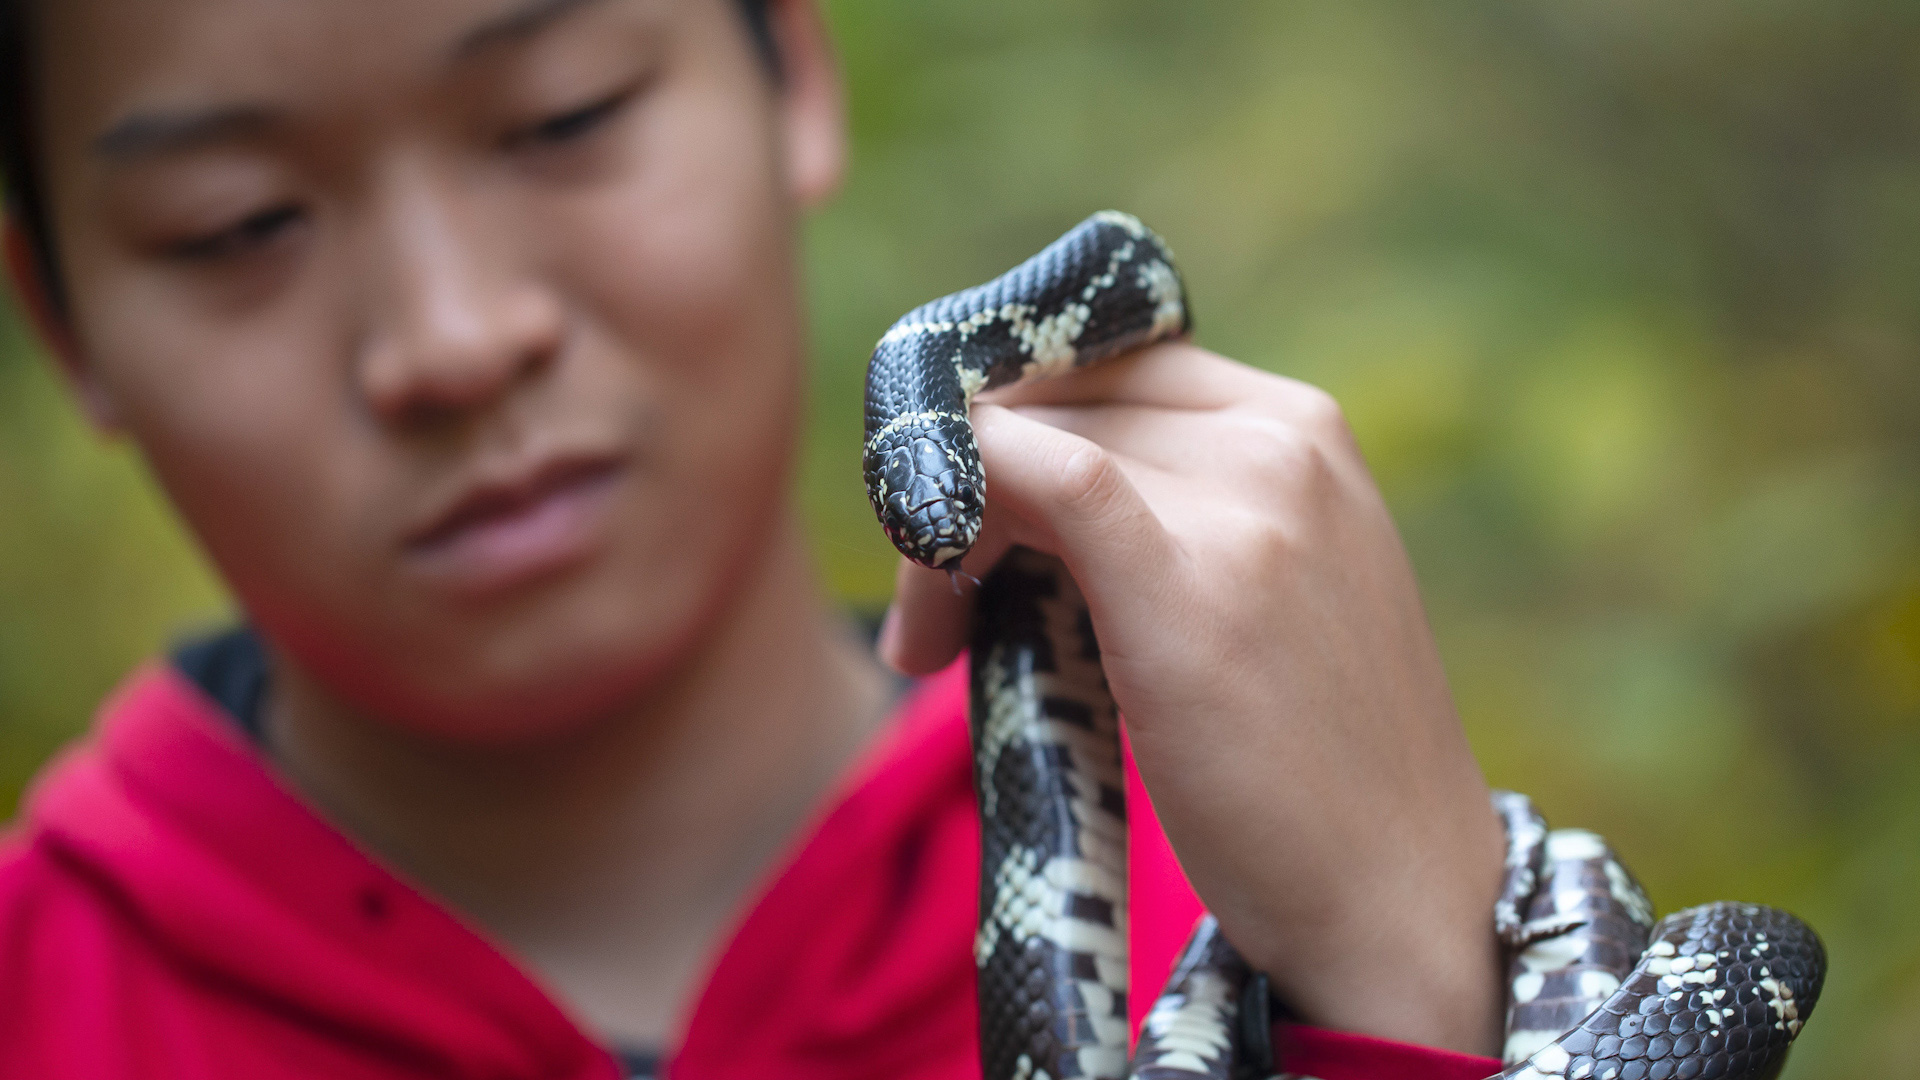 UMD Student Justin Lee Discovers New Species Through Herpetology Research. This is a picture of him holding a snake.